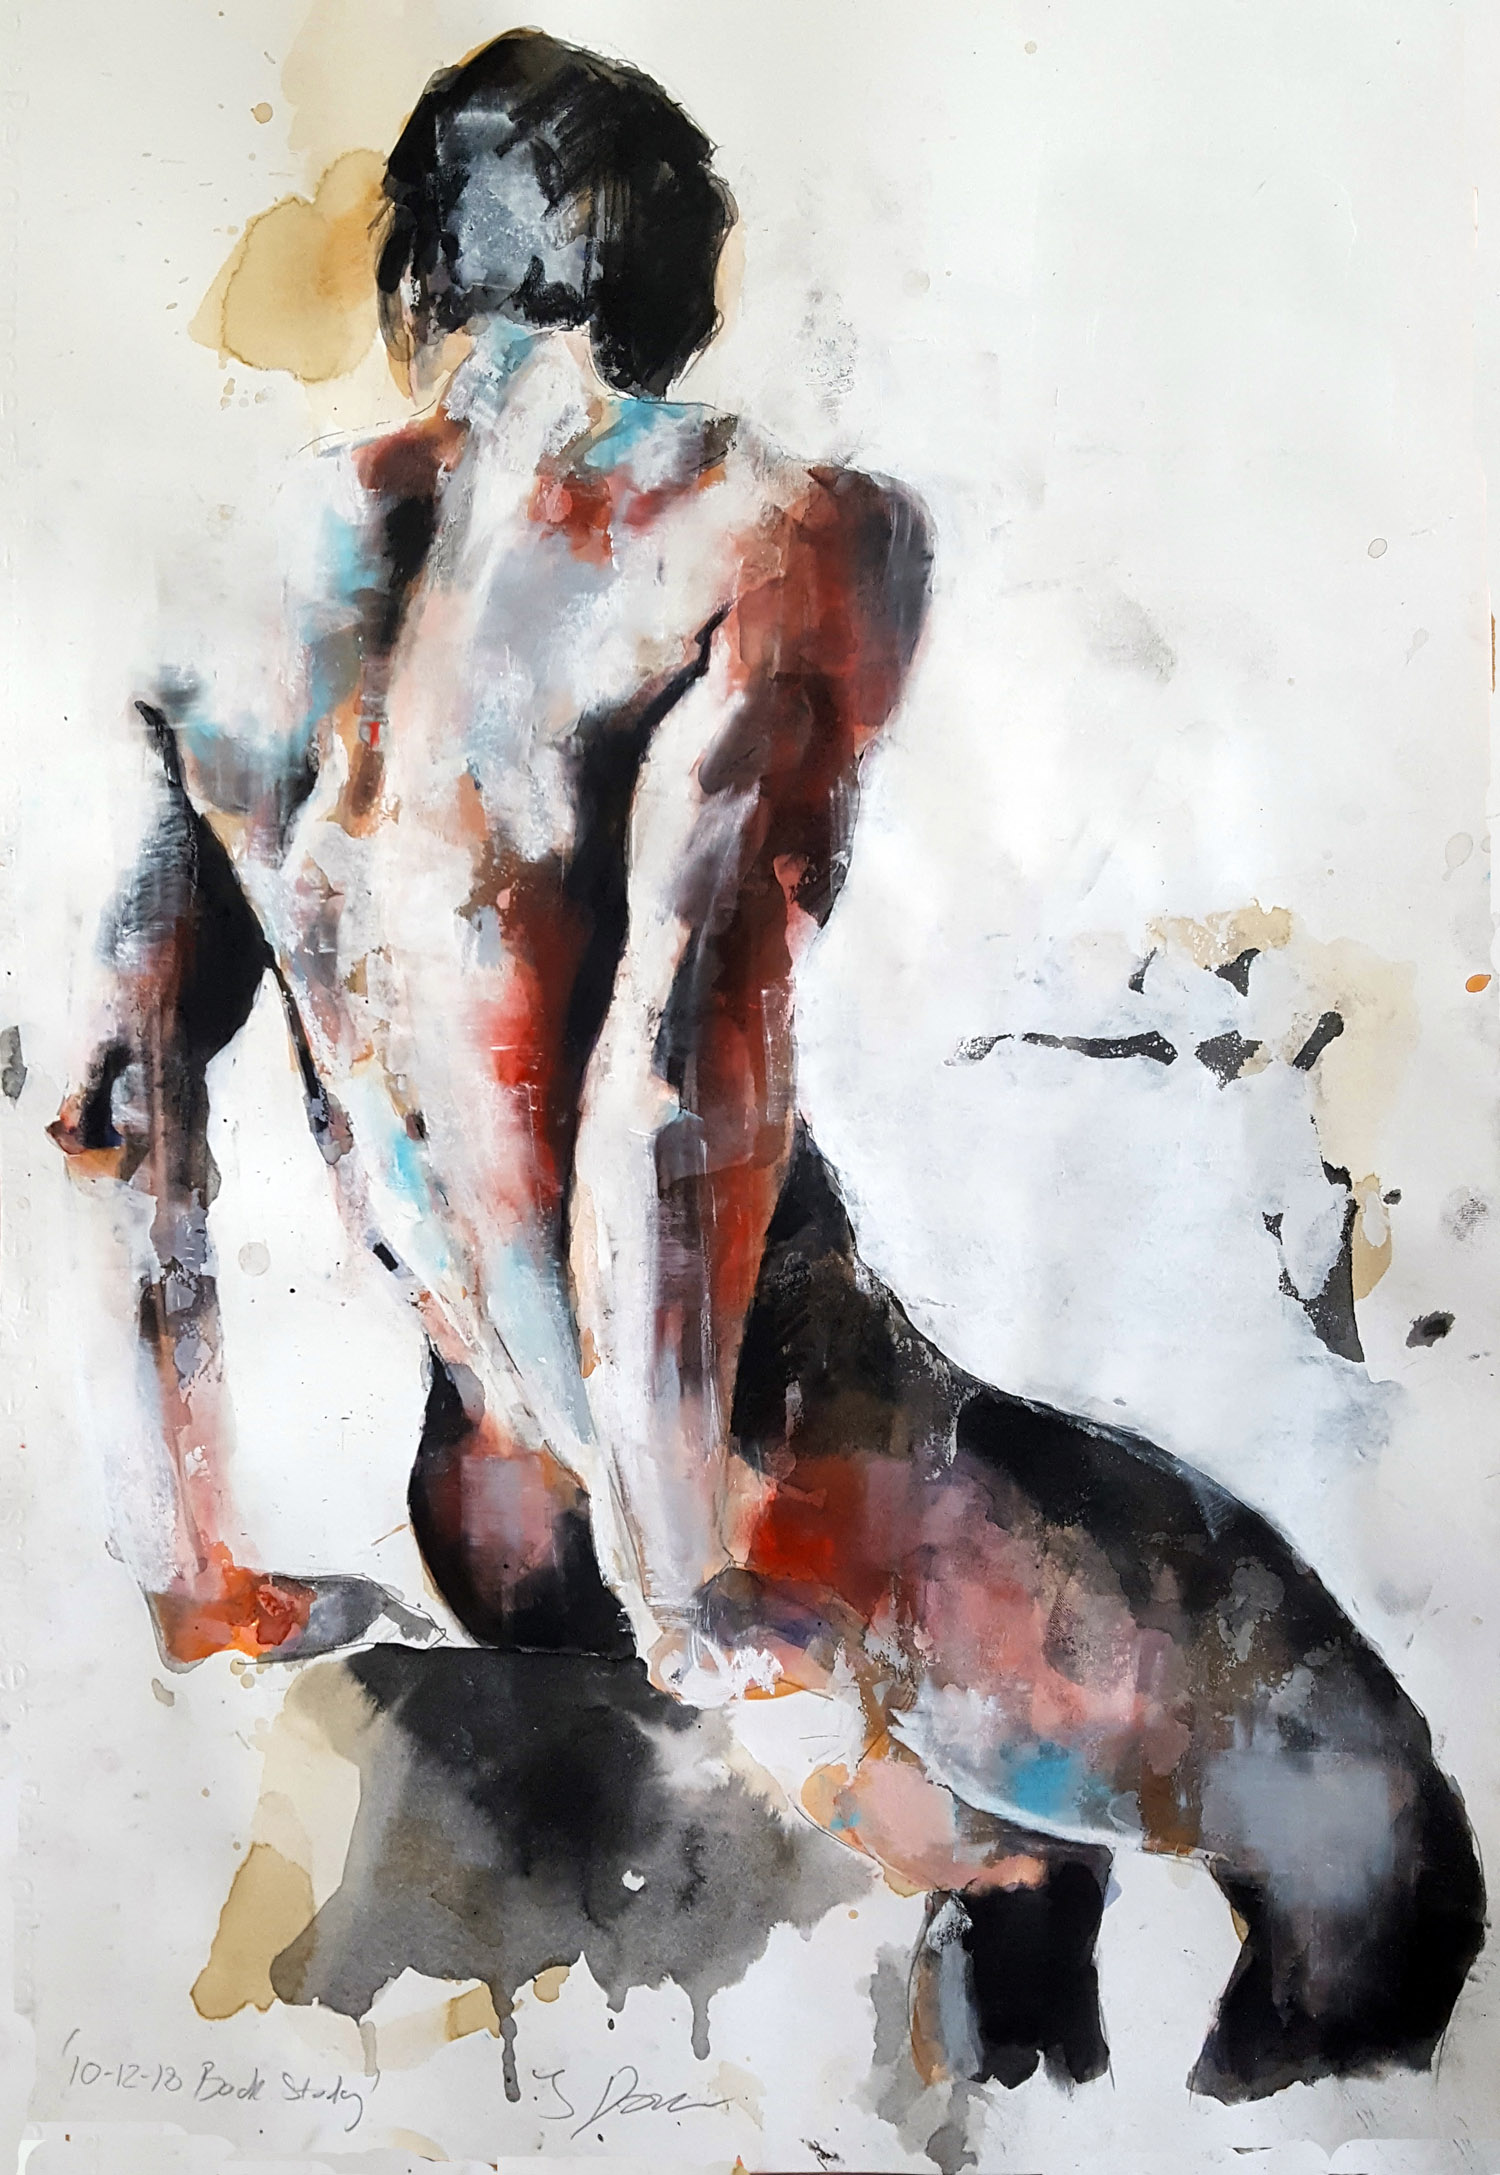 10-12-18 back study, mixedmedia on paper, 56x38cm